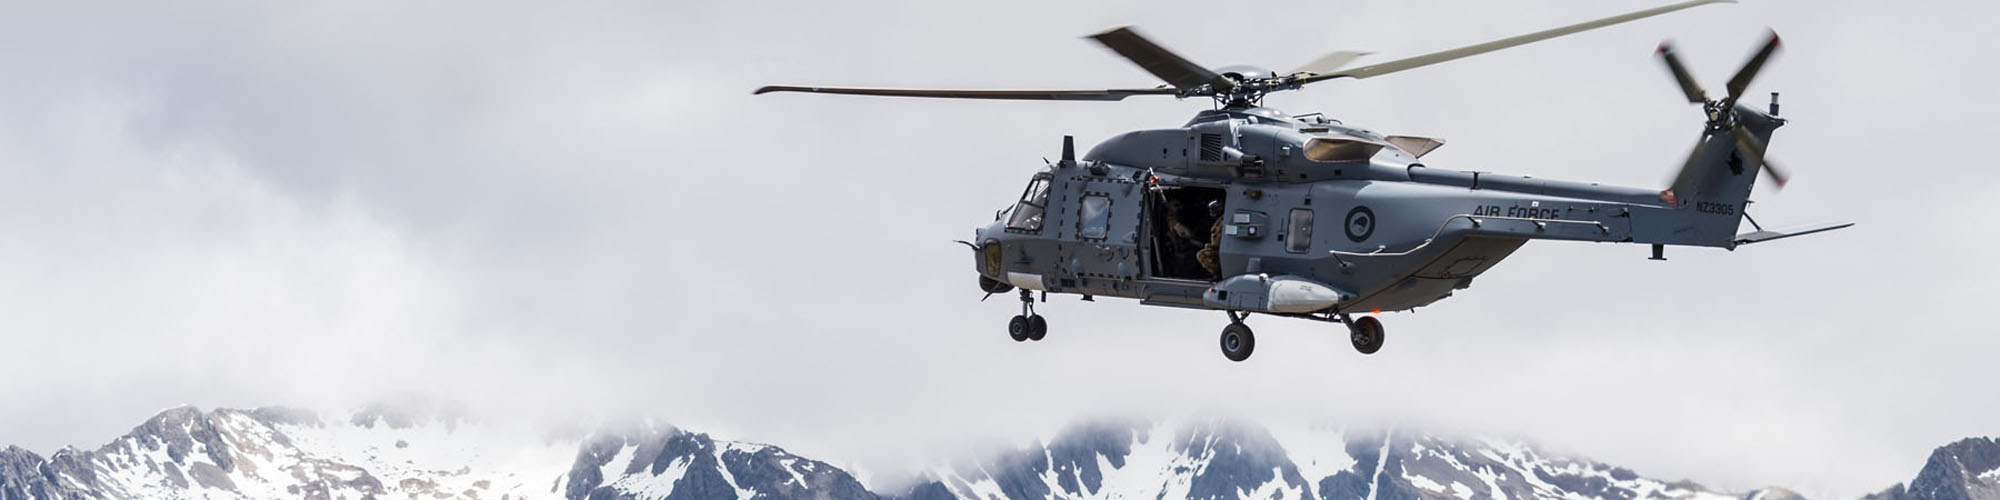 A large military helicpoter hovers in front of mountains under a cloudy sky